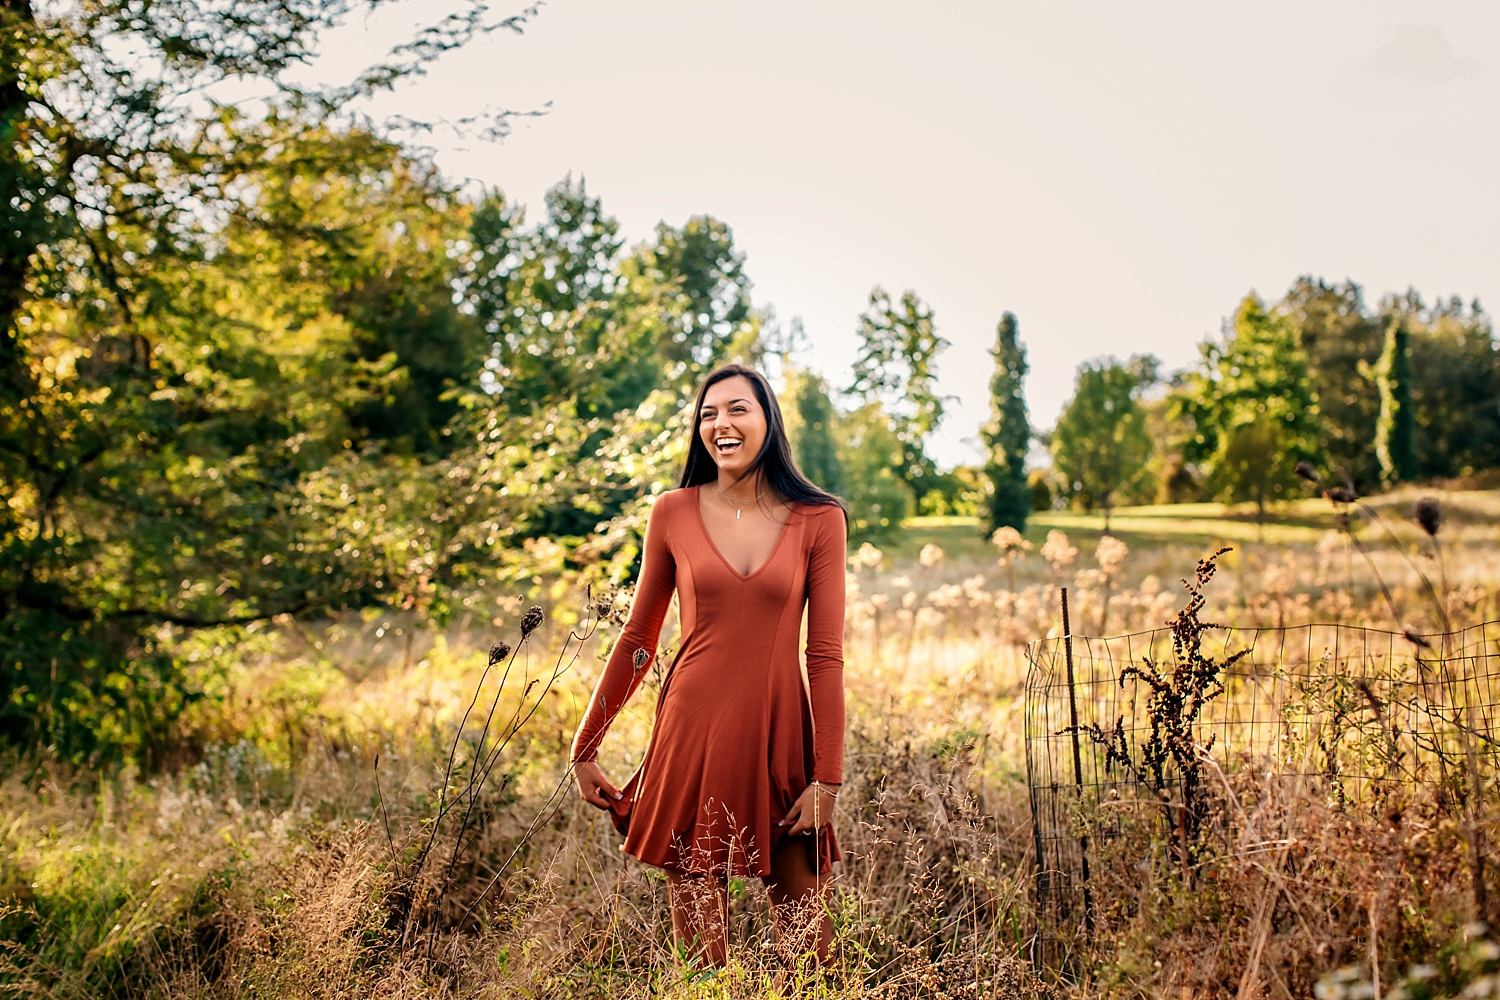 girl laughing in field playing with her dress for senior portraits during summer in newark ohio